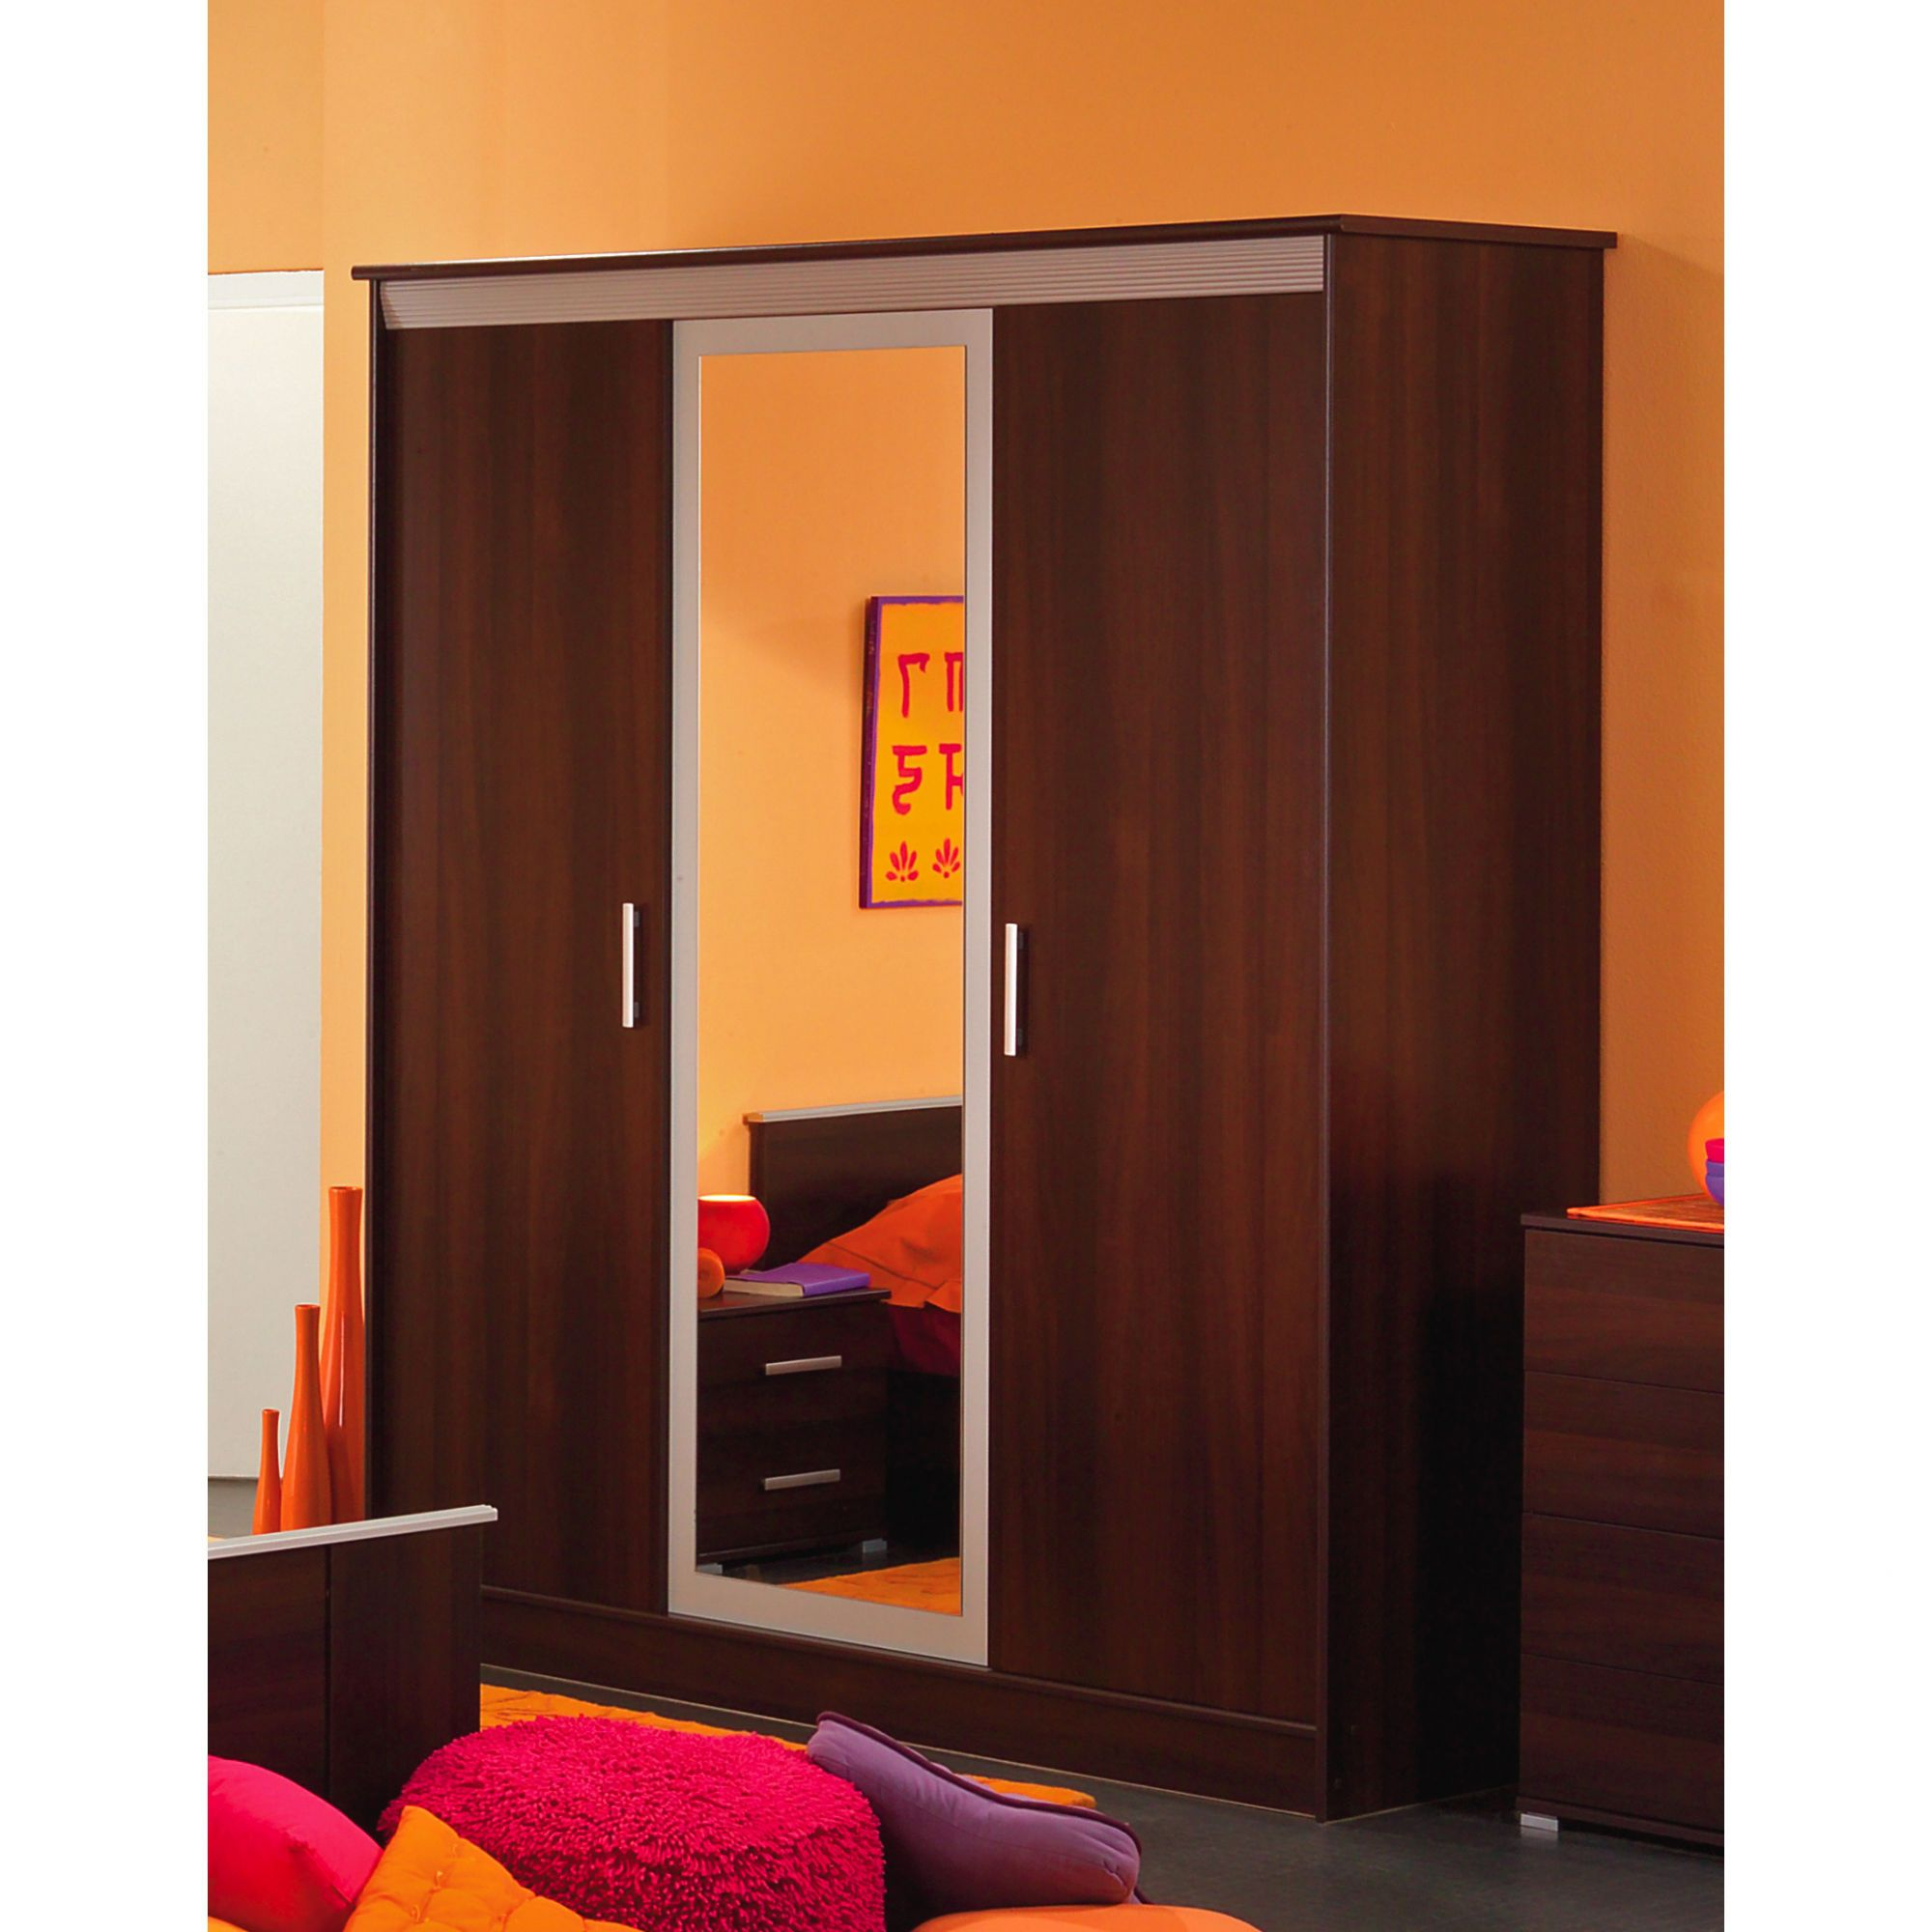 Parisot Samba Three Door Wardrobe in Dark Walnut / Metal Grey at Tescos Direct